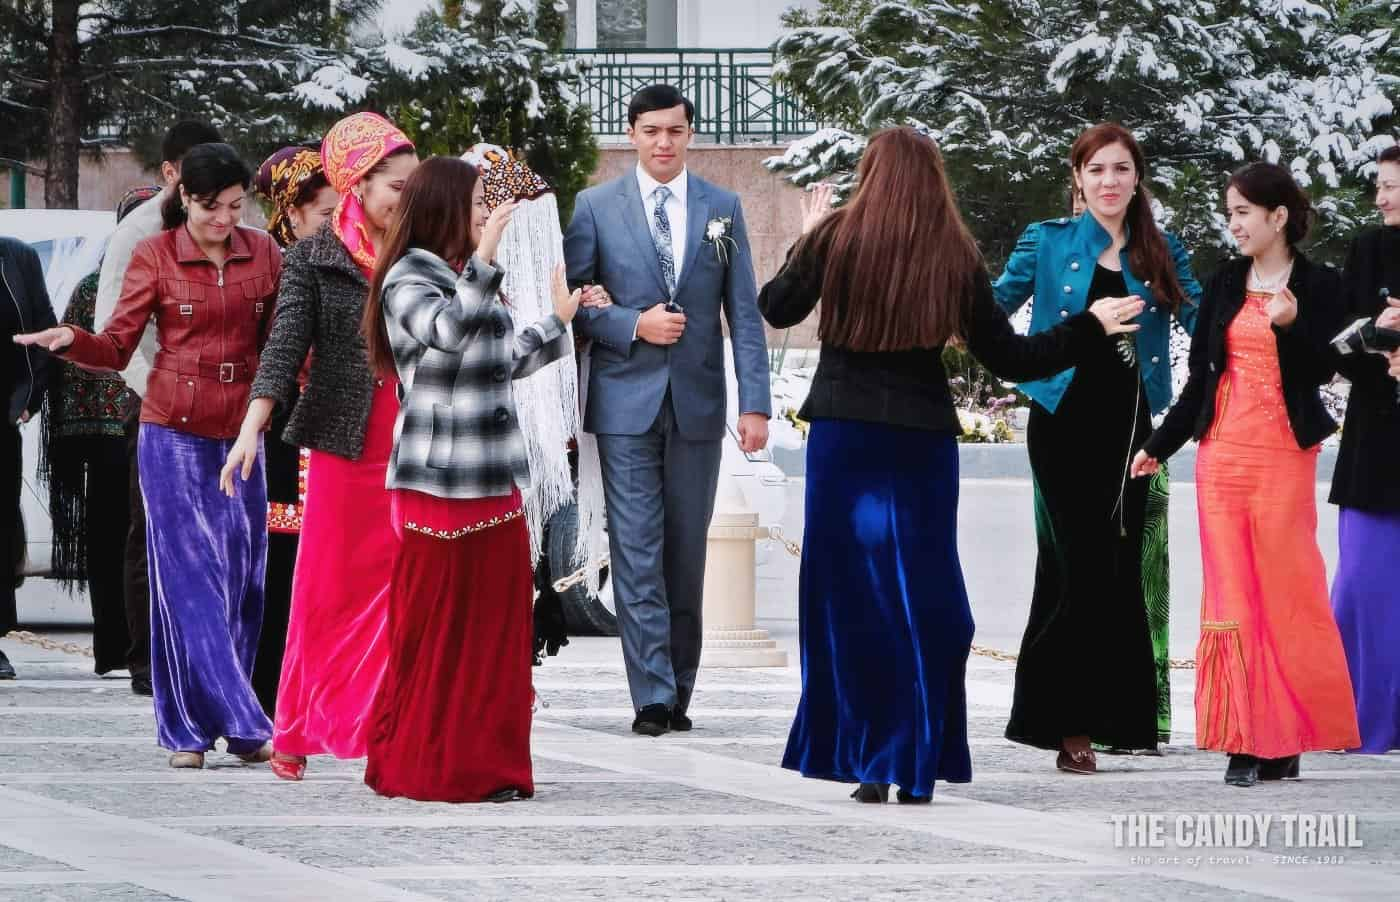 Turkmen wedding party at Independence Monument area